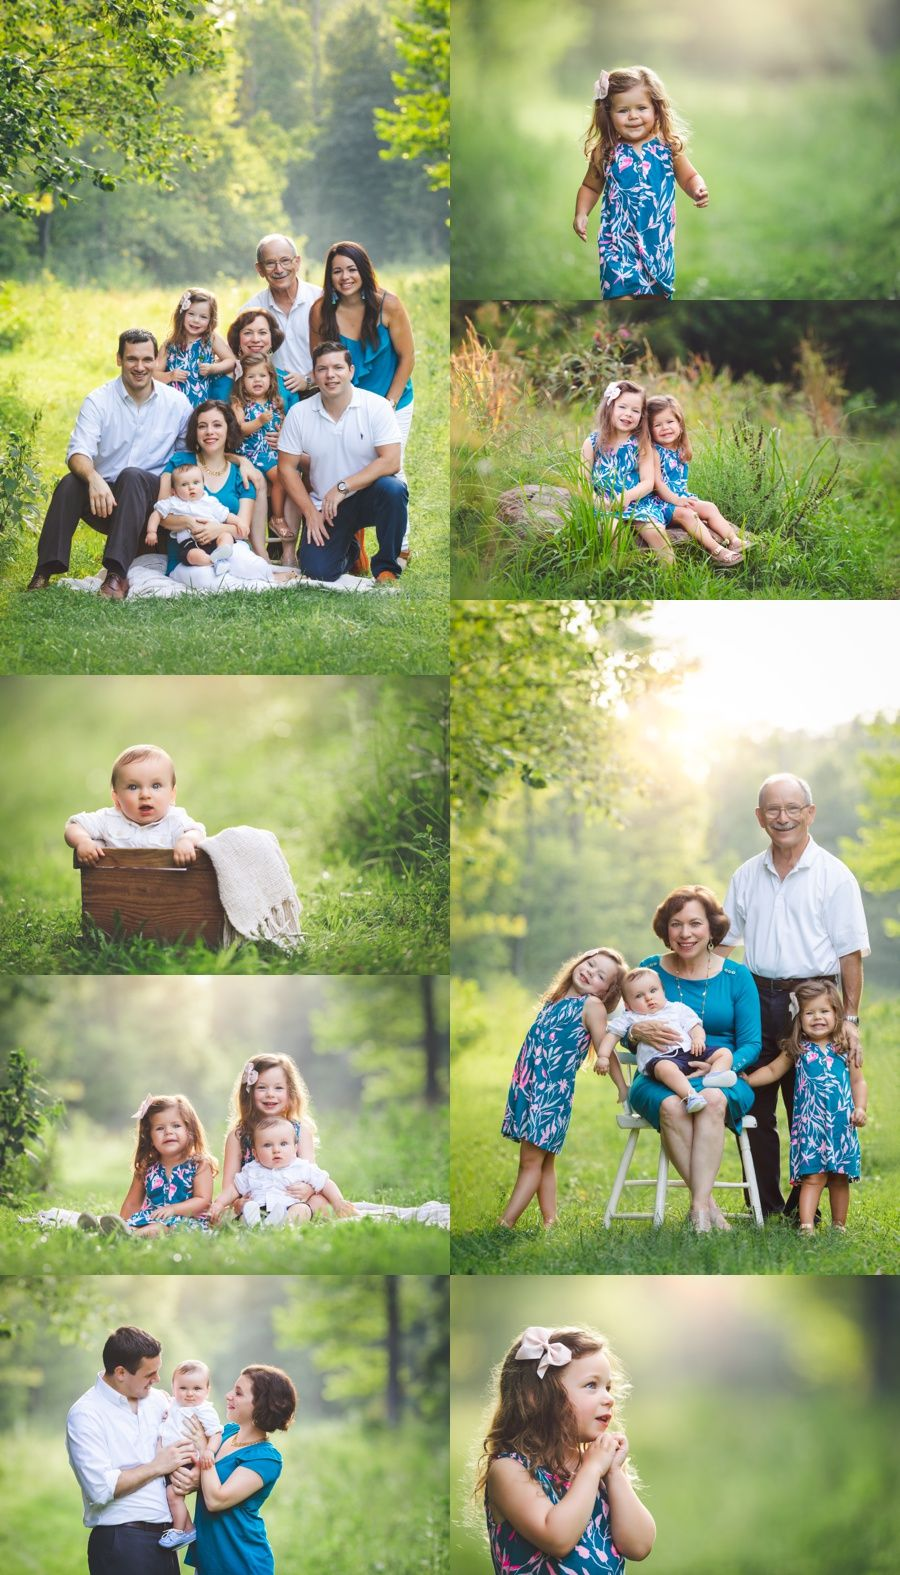 Willowsford, VA extended family portraits by Rebecca Danzenbaker. Cousins and siblings family photography in Ashburn, VA. #cousins #siblings #rebeccadanzenbakerphotography #familyphotography #summerphotography #ashburnfamilyphotography #willowsfordphotographer #loudounfamilyphotographer #extendedfamilyphotography